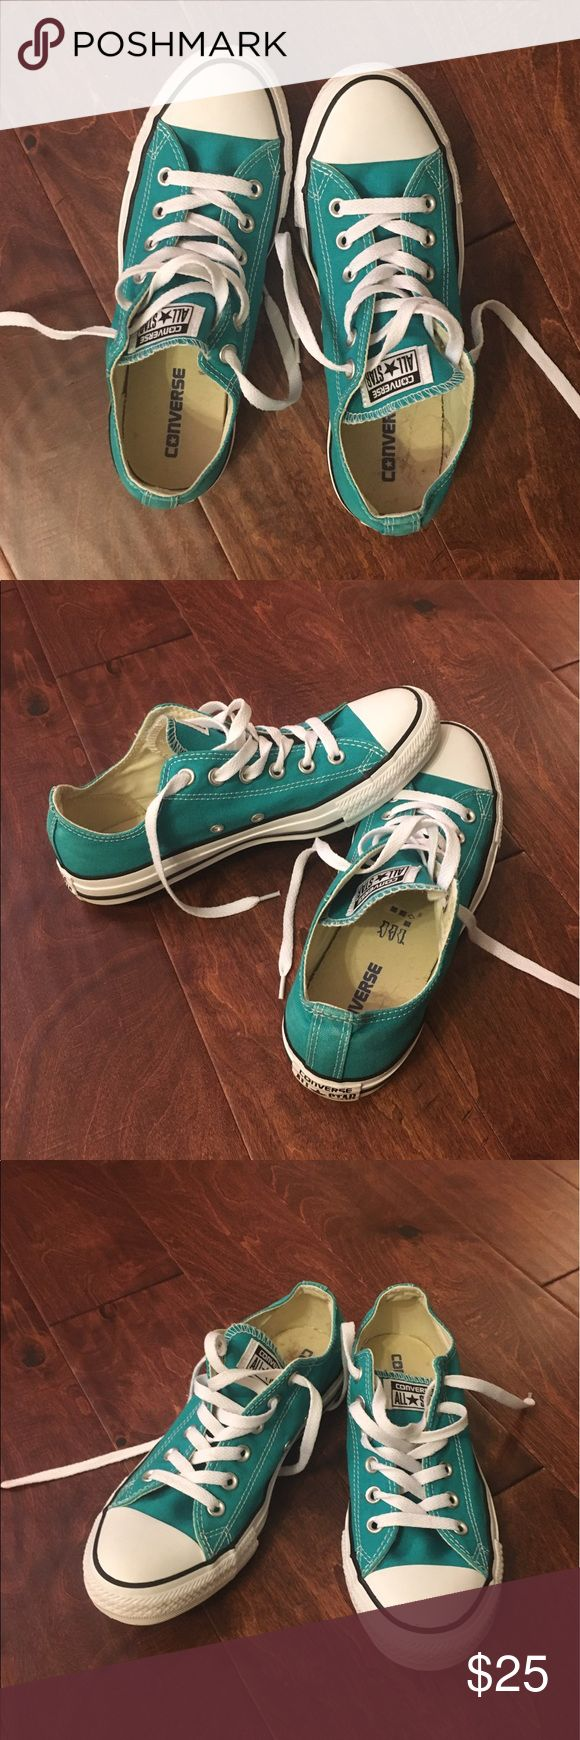 Teal Converse All Stars EUC sneakers in near perfect condition.  Light wear on All Star labels in back of shoes, as pictured.  Men's size 7/Women's size 9. Converse Shoes